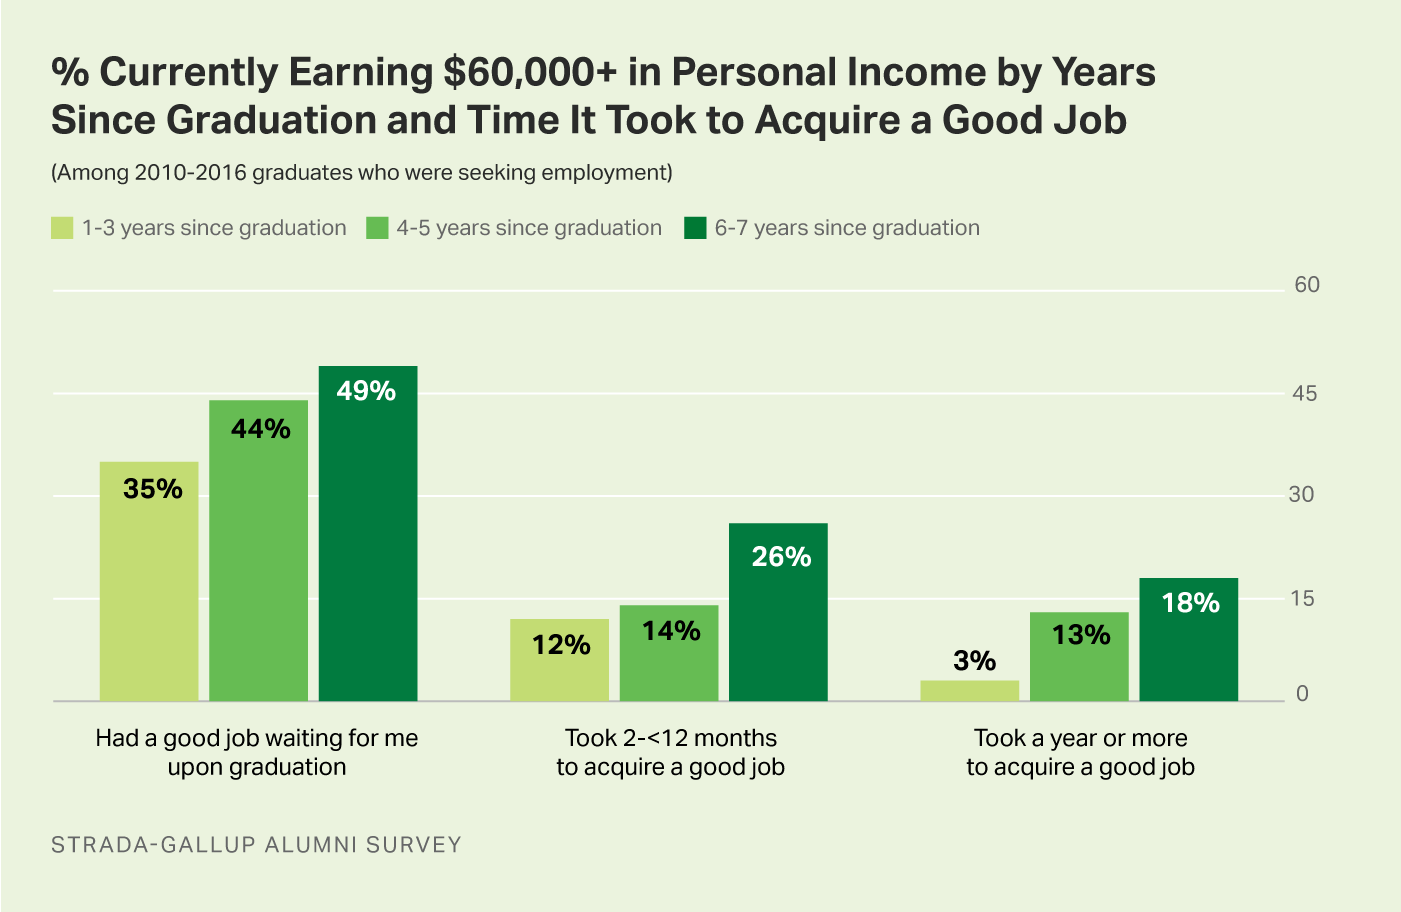 Bar graph. Higher percentages of college graduates who had a job waiting for them at graduation earn $60,000+ per year than those who did not have a good job waiting.